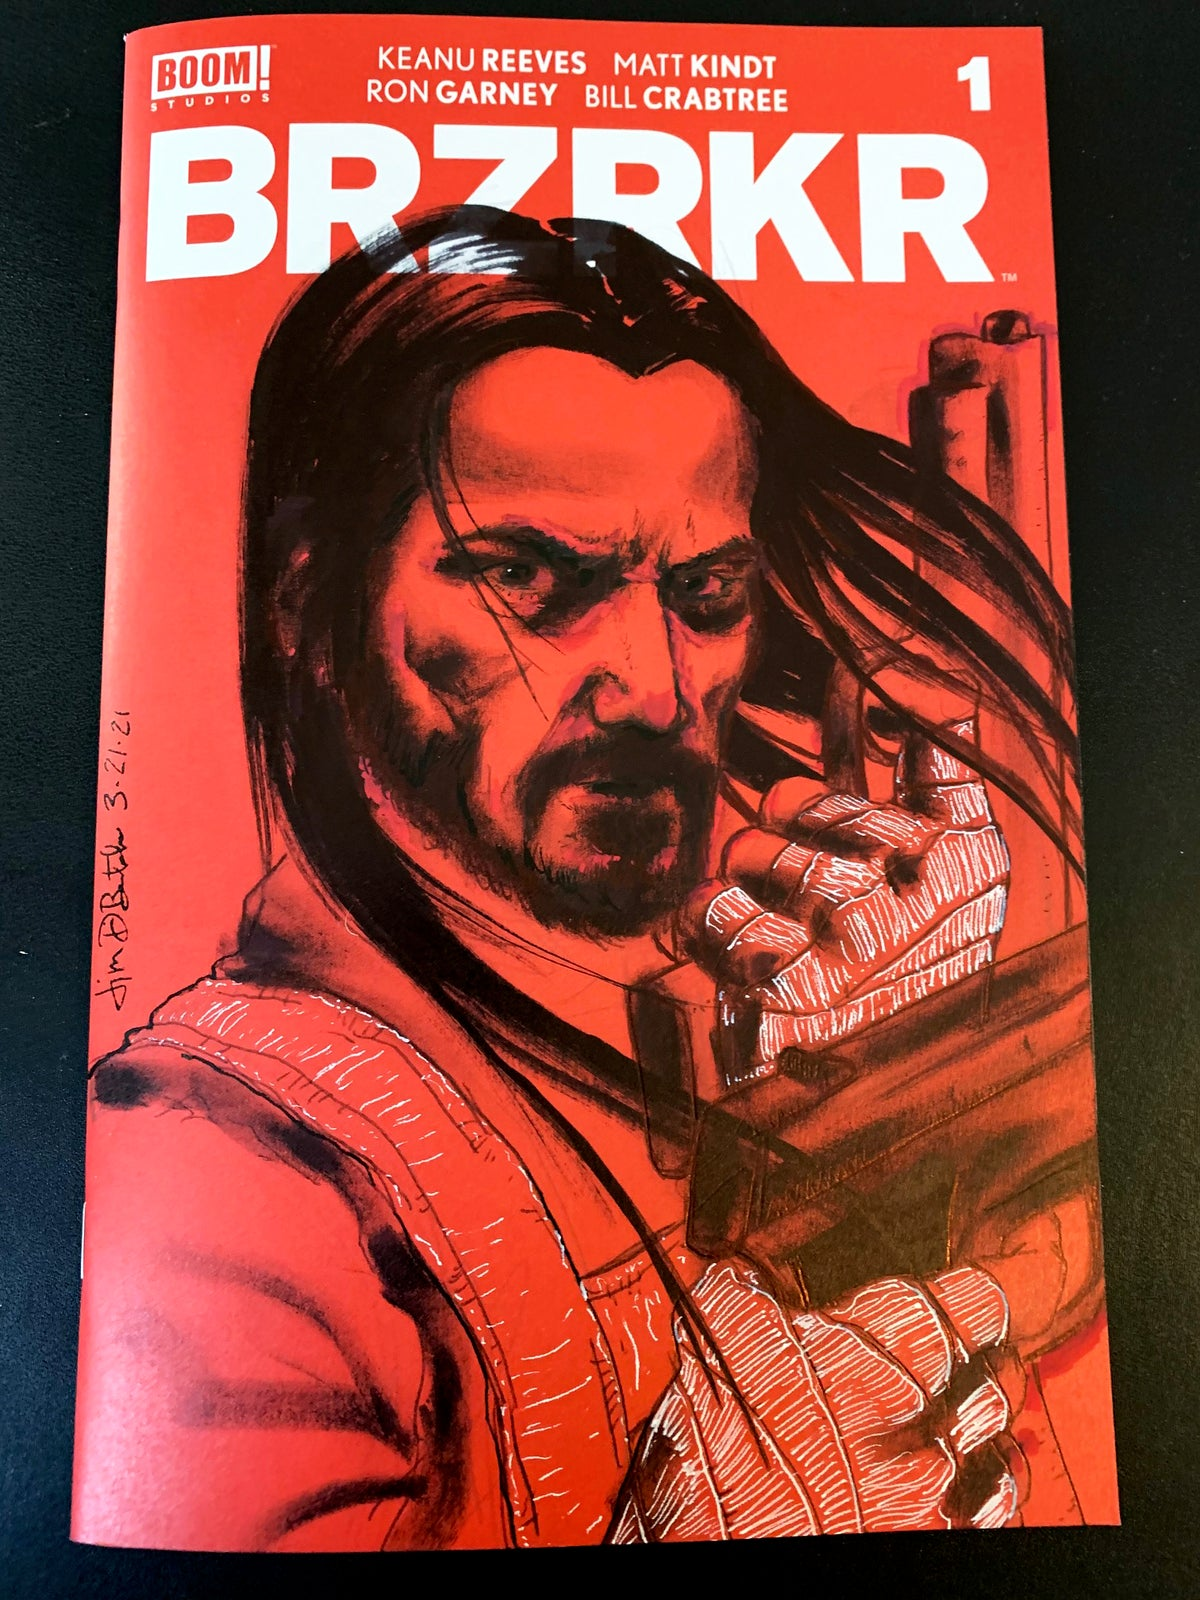 Keanu (double guns) on BRZRKR comic book sketch cover (original art drawn directly on cover)